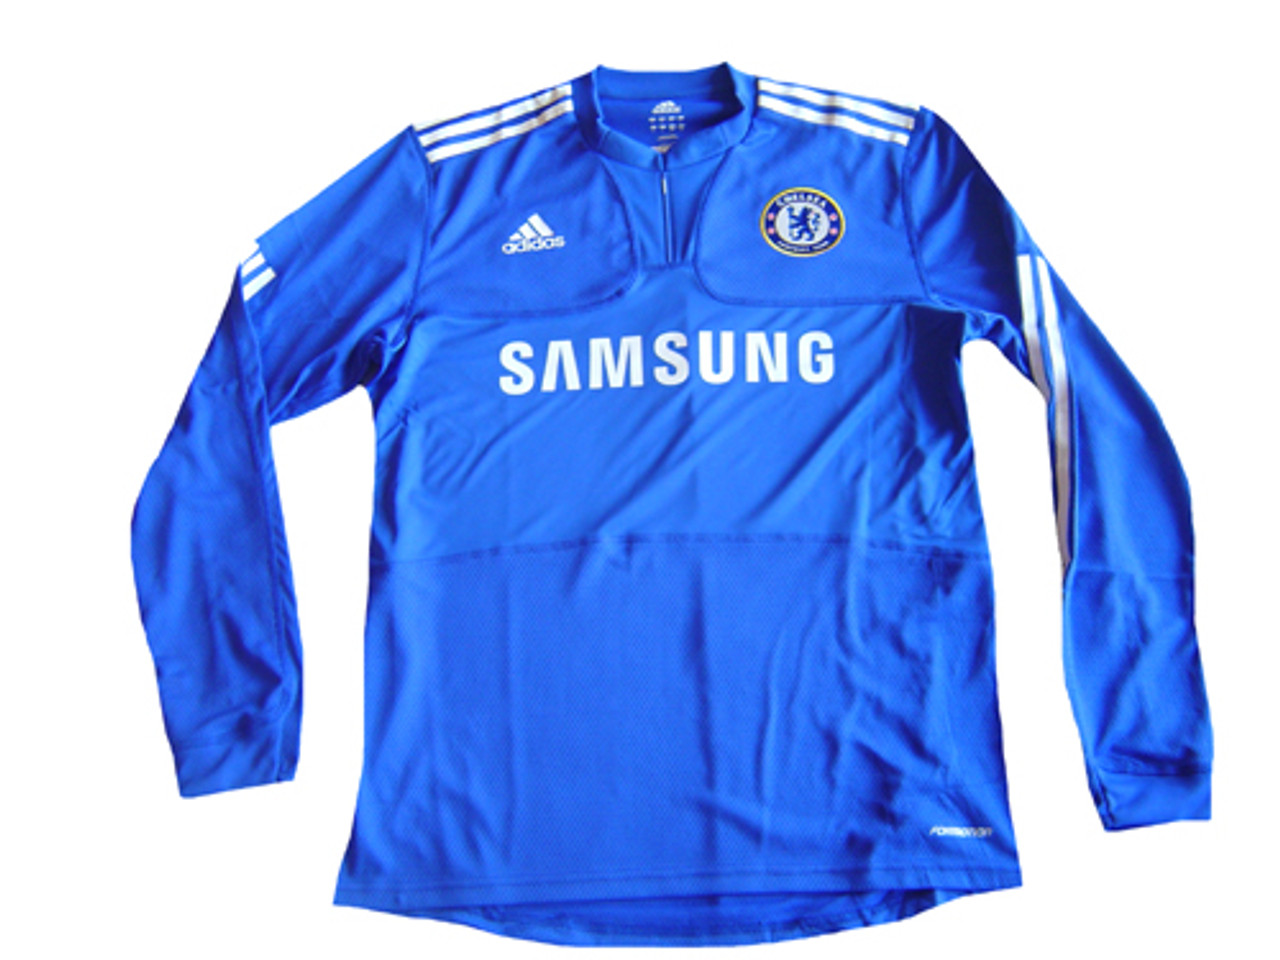 pretty nice 9aba1 f7680 ADIDAS CHELSEA 2010 AUTHENTIC HOME L/S JERSEY